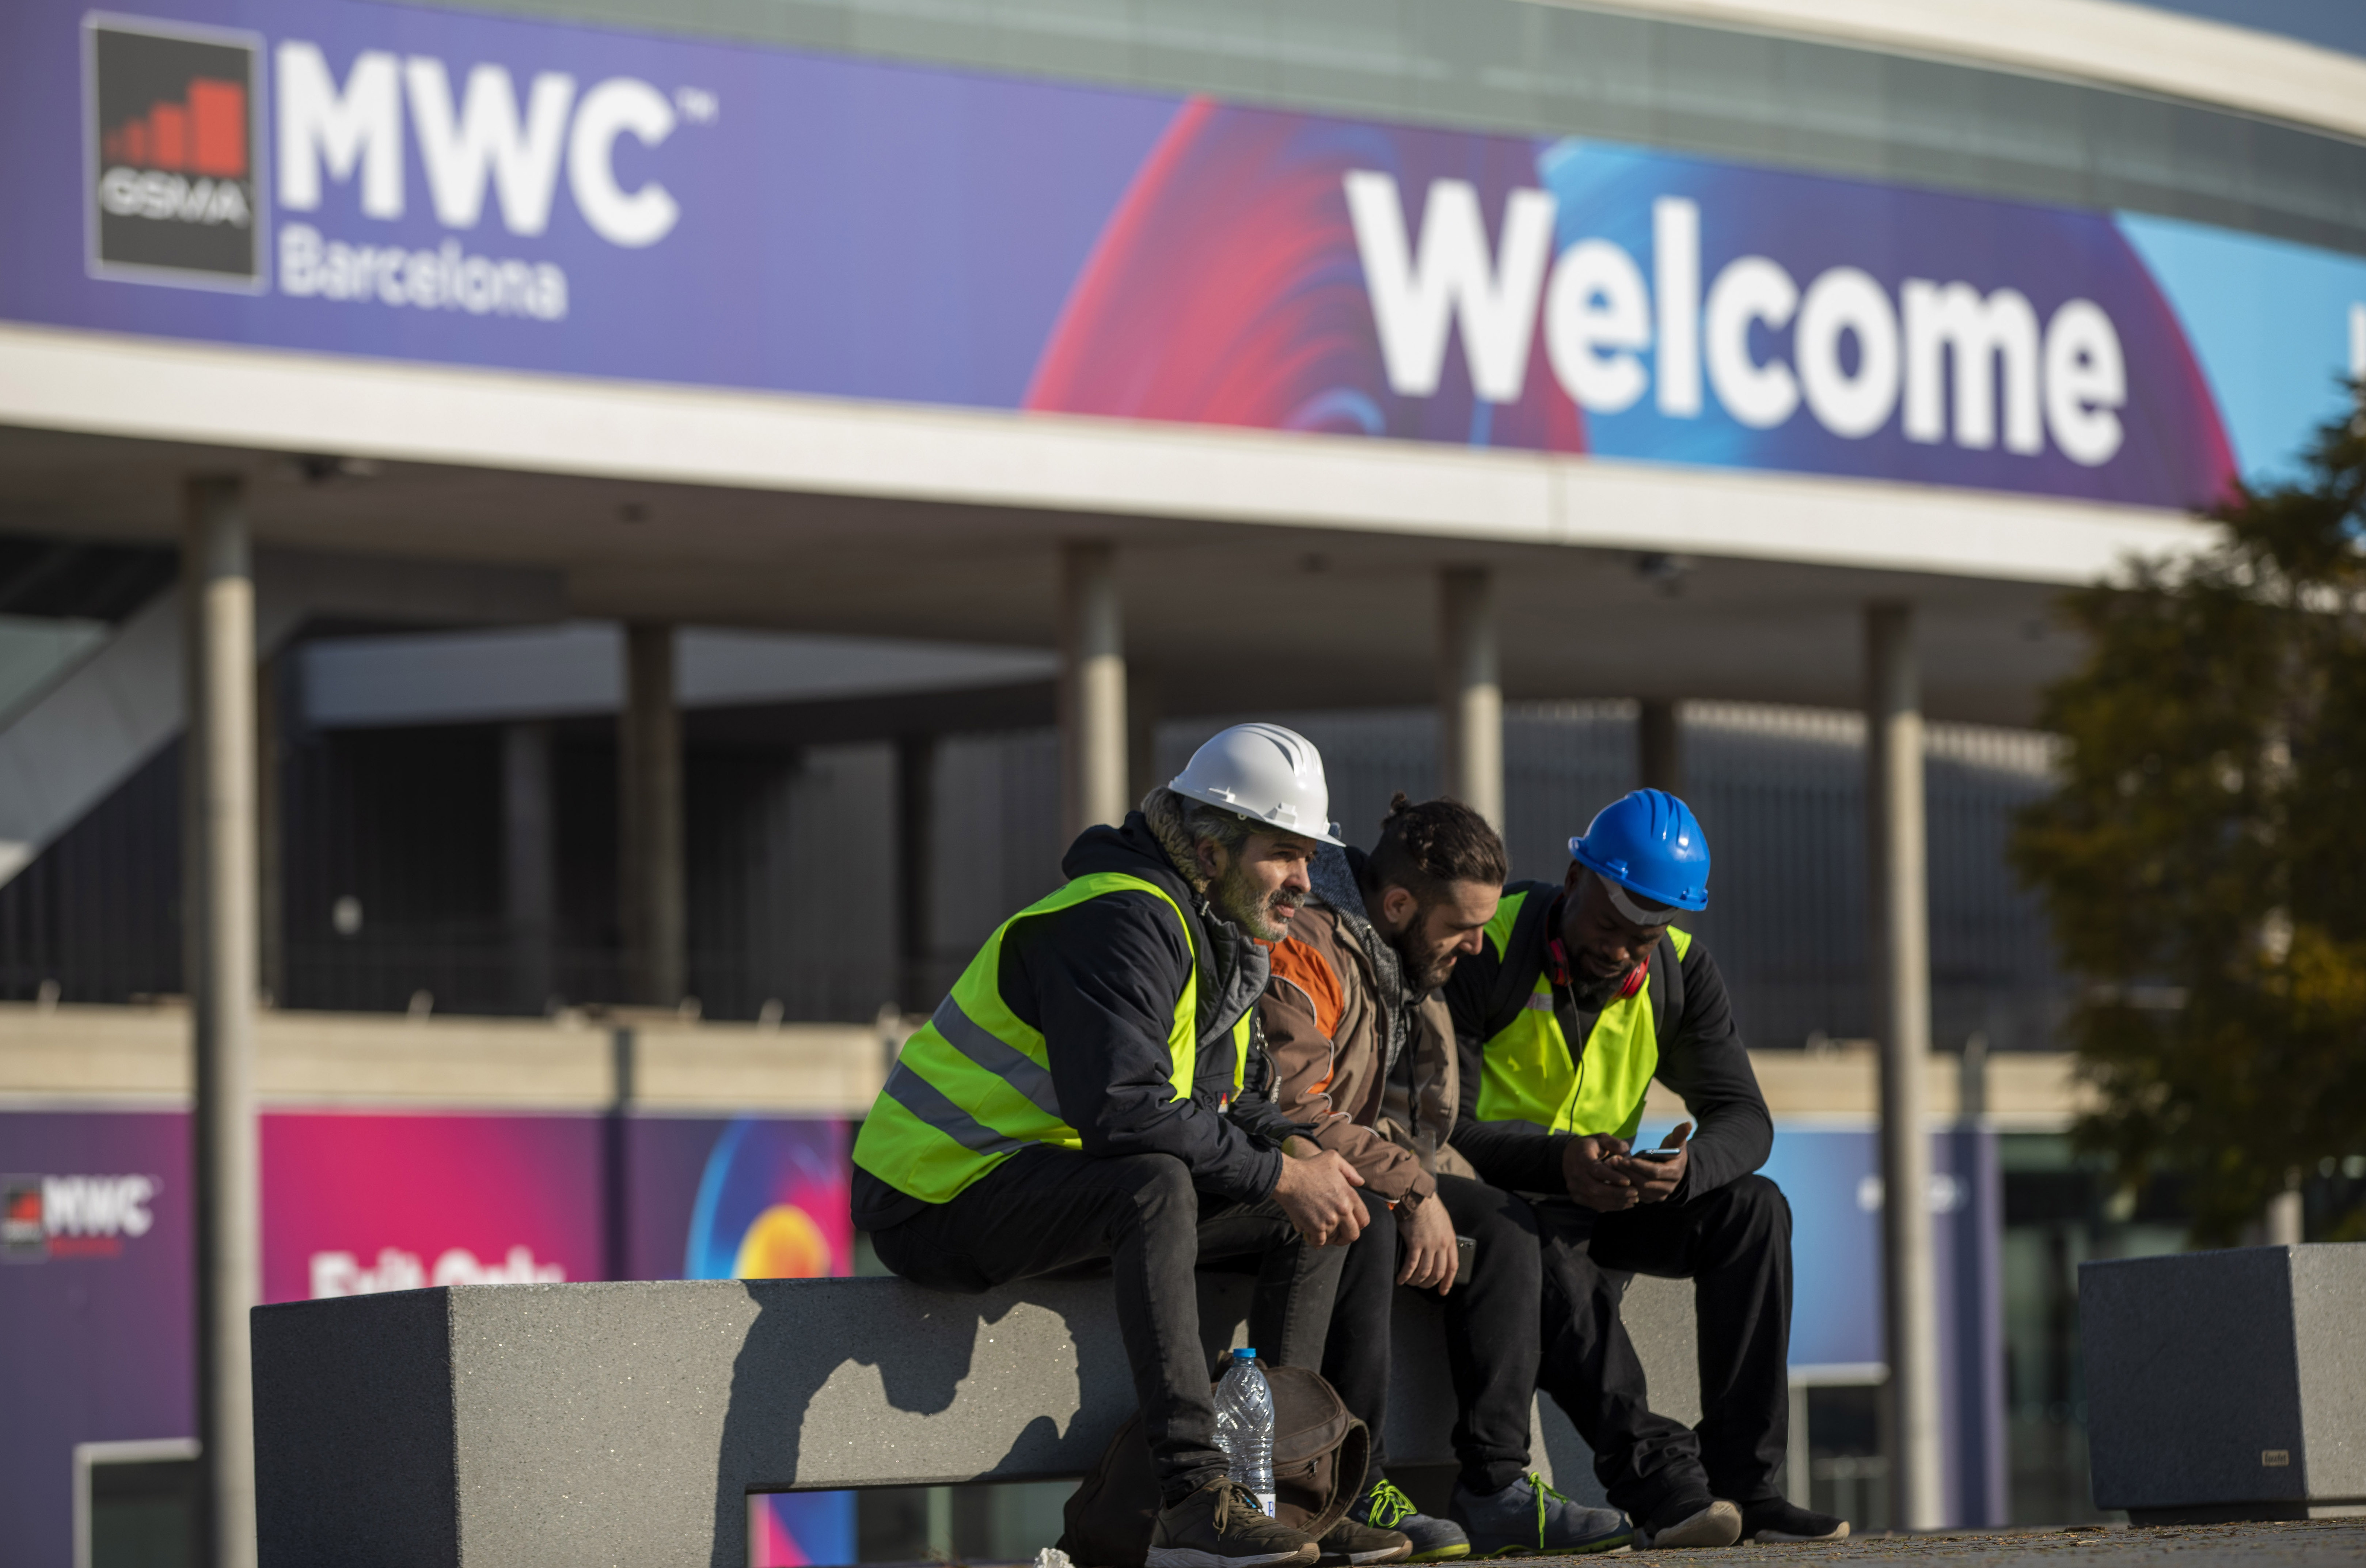 Workers at the Mobile World Congress sit outside the venue in Barcelona, Spain, Thursday, Feb. 13, 2020.